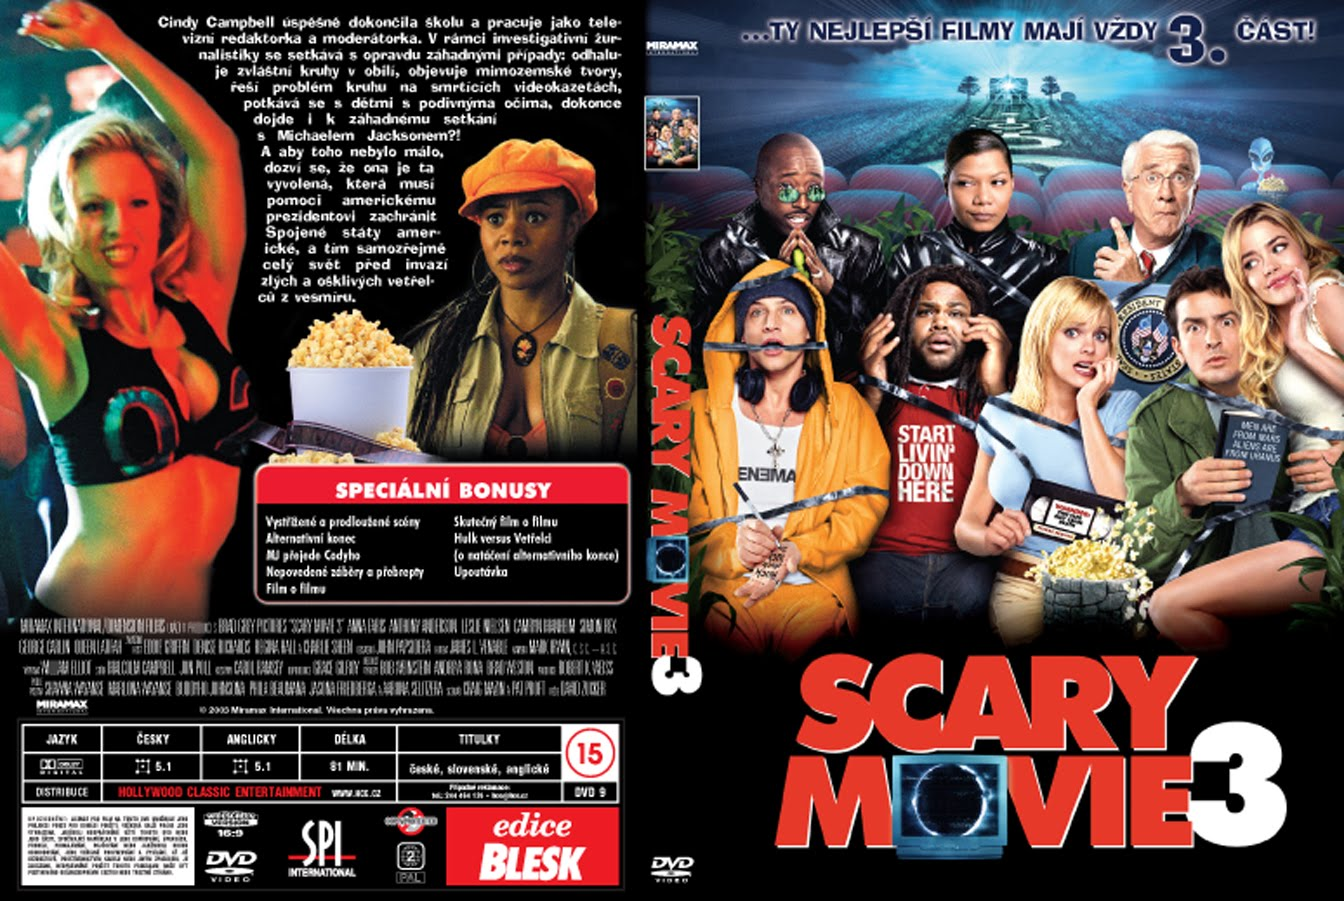 http://3.bp.blogspot.com/-m_kpd2qTOzg/Tuo8yt5YgII/AAAAAAACk_4/Zii6_4neo7s/s1600/Scary_movie_3%2B2003.jpg